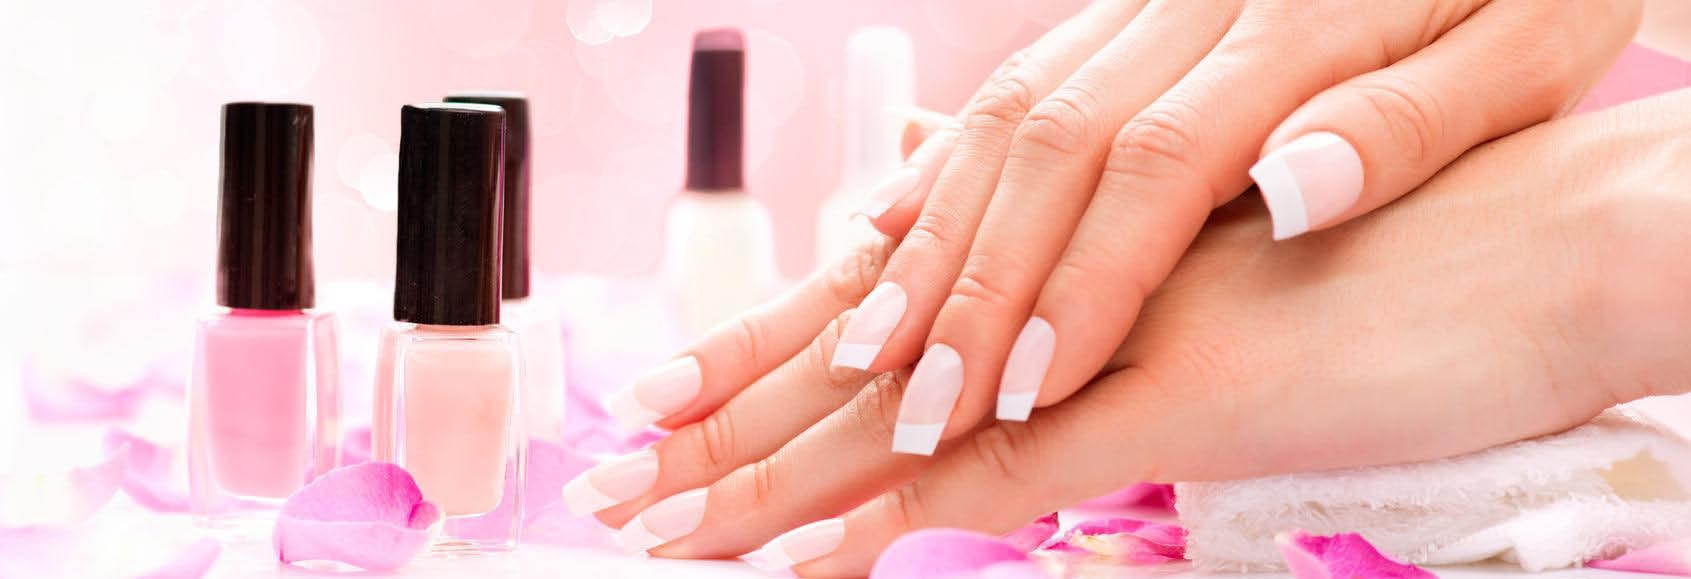 Manicure pedicure manicure coupon pedicure coupon nail care